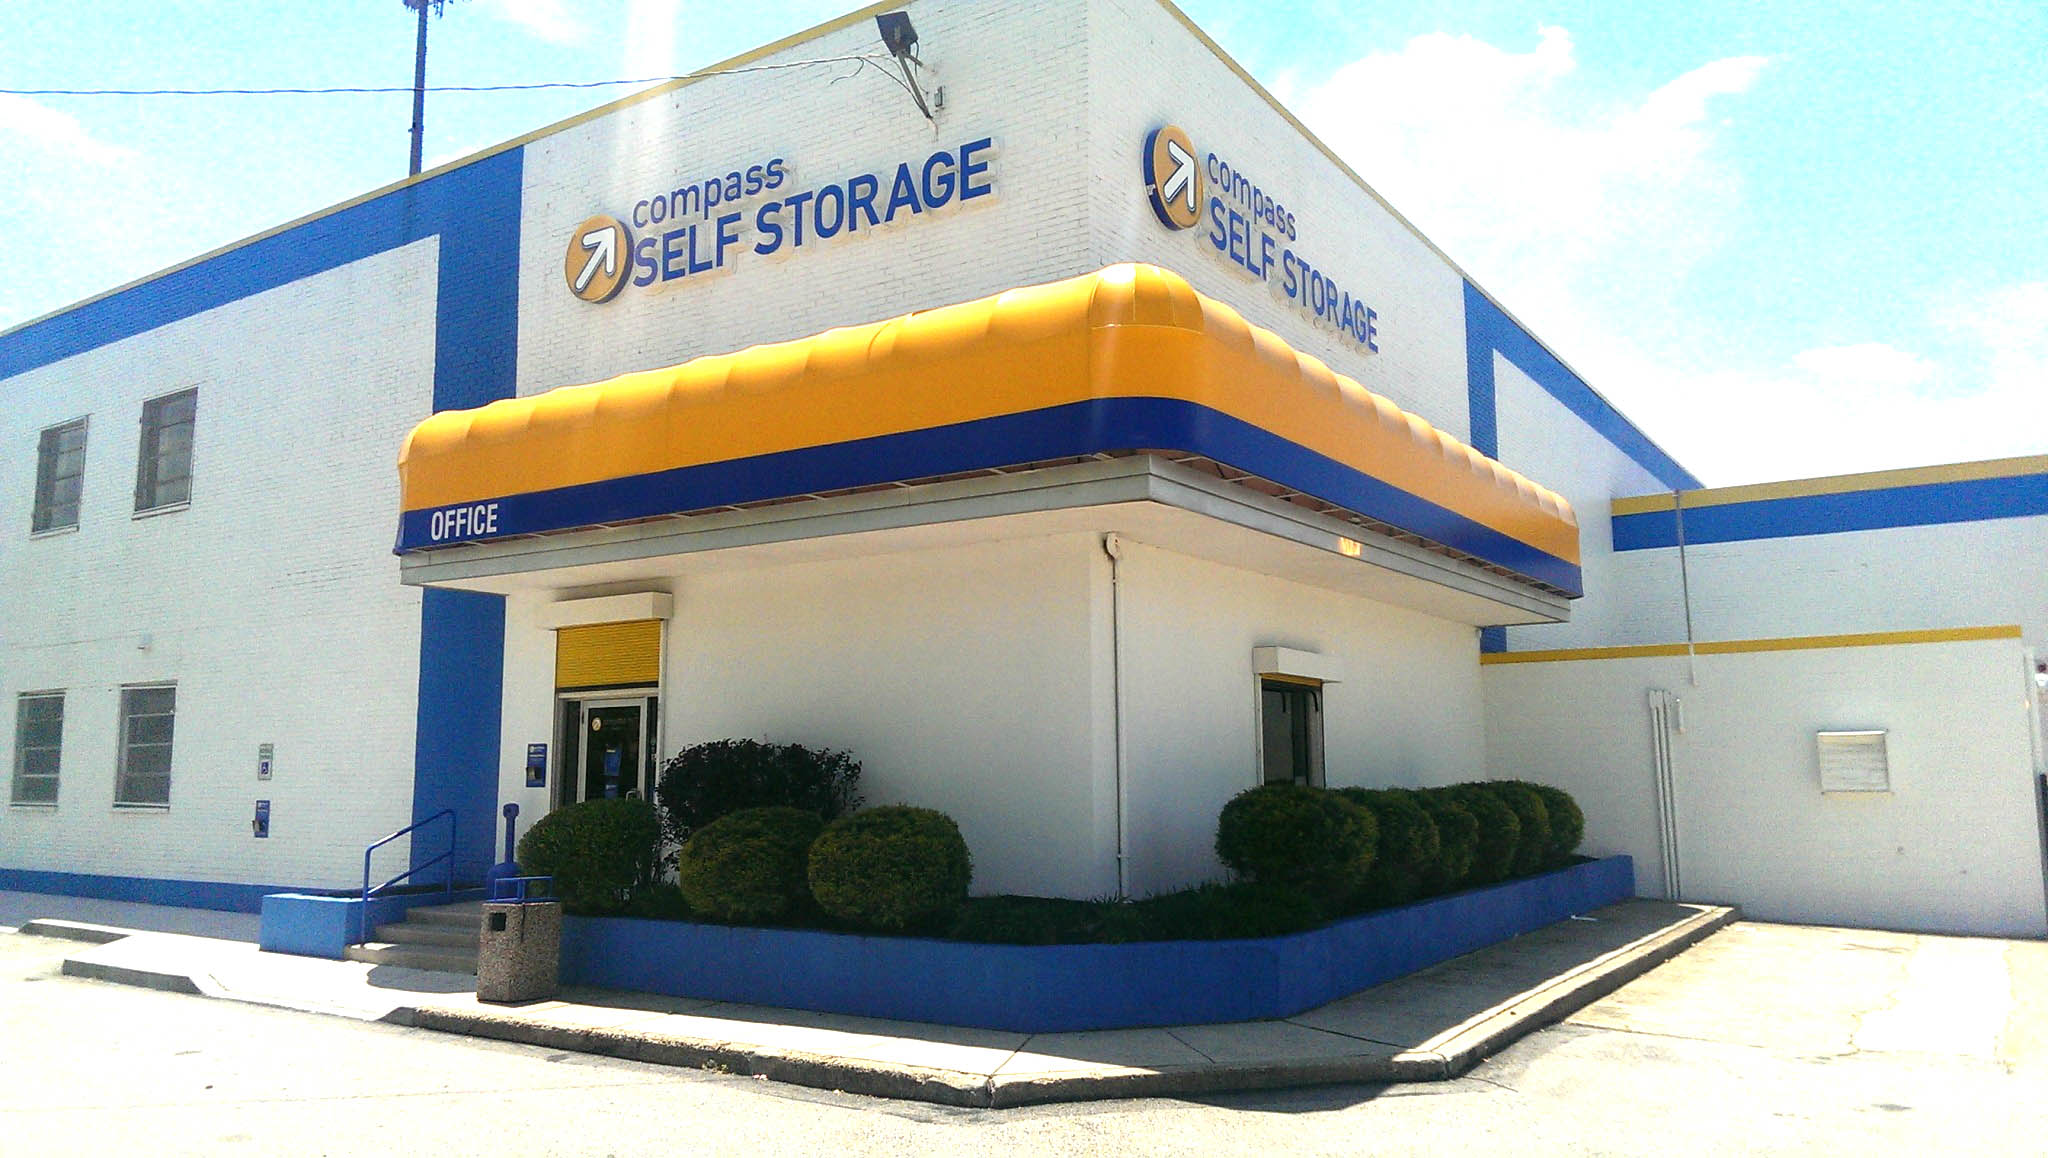 Exterior Of Office at Compass Self Storage in Philadelphia, PA